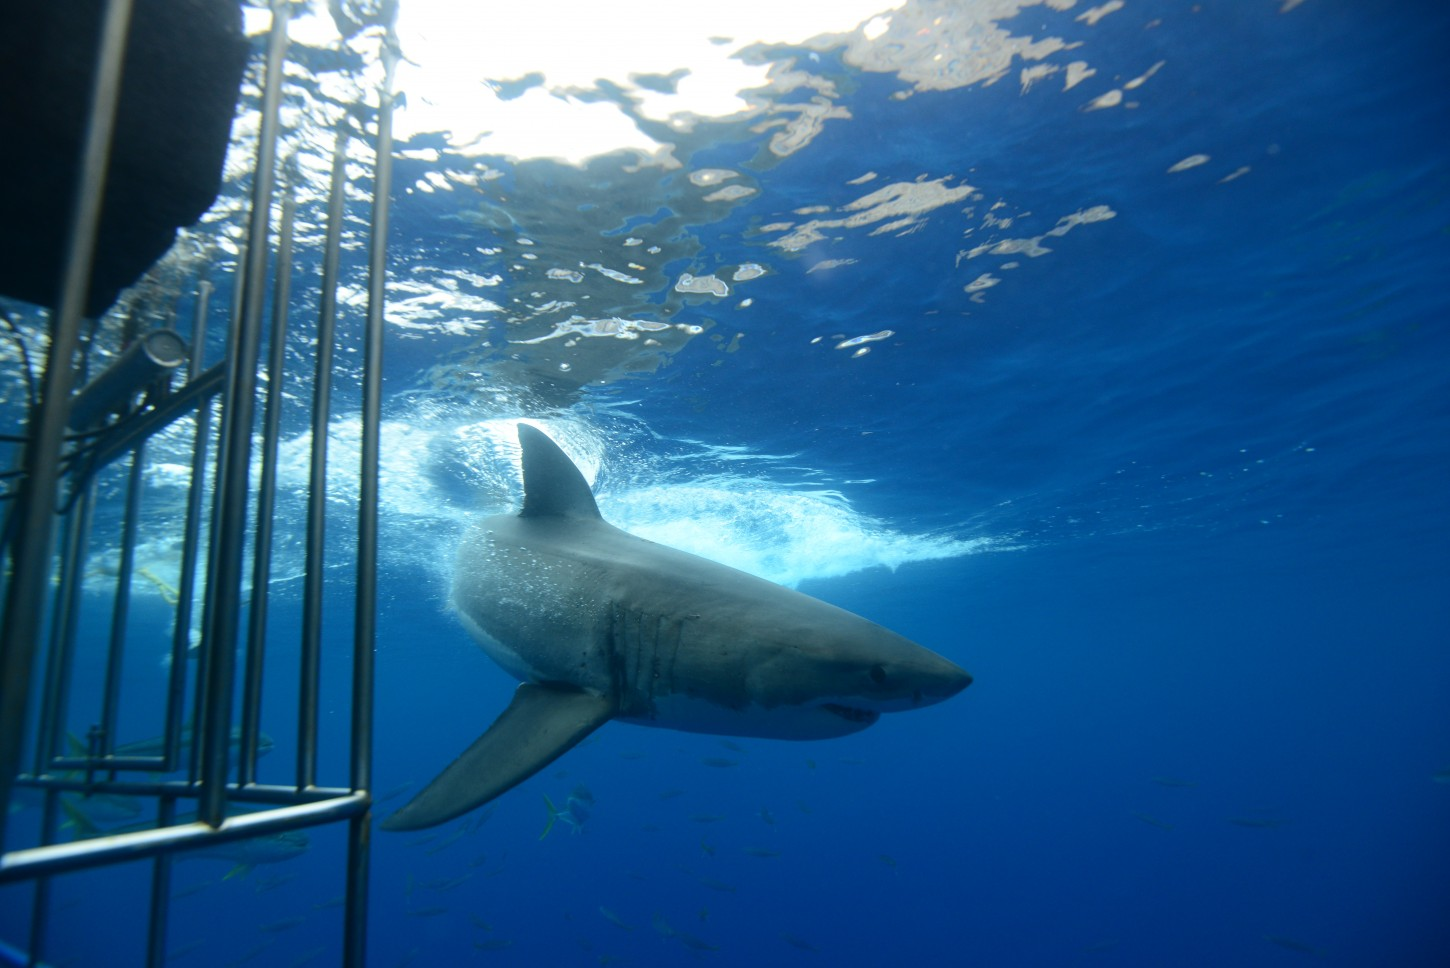 water turned by large great white shark